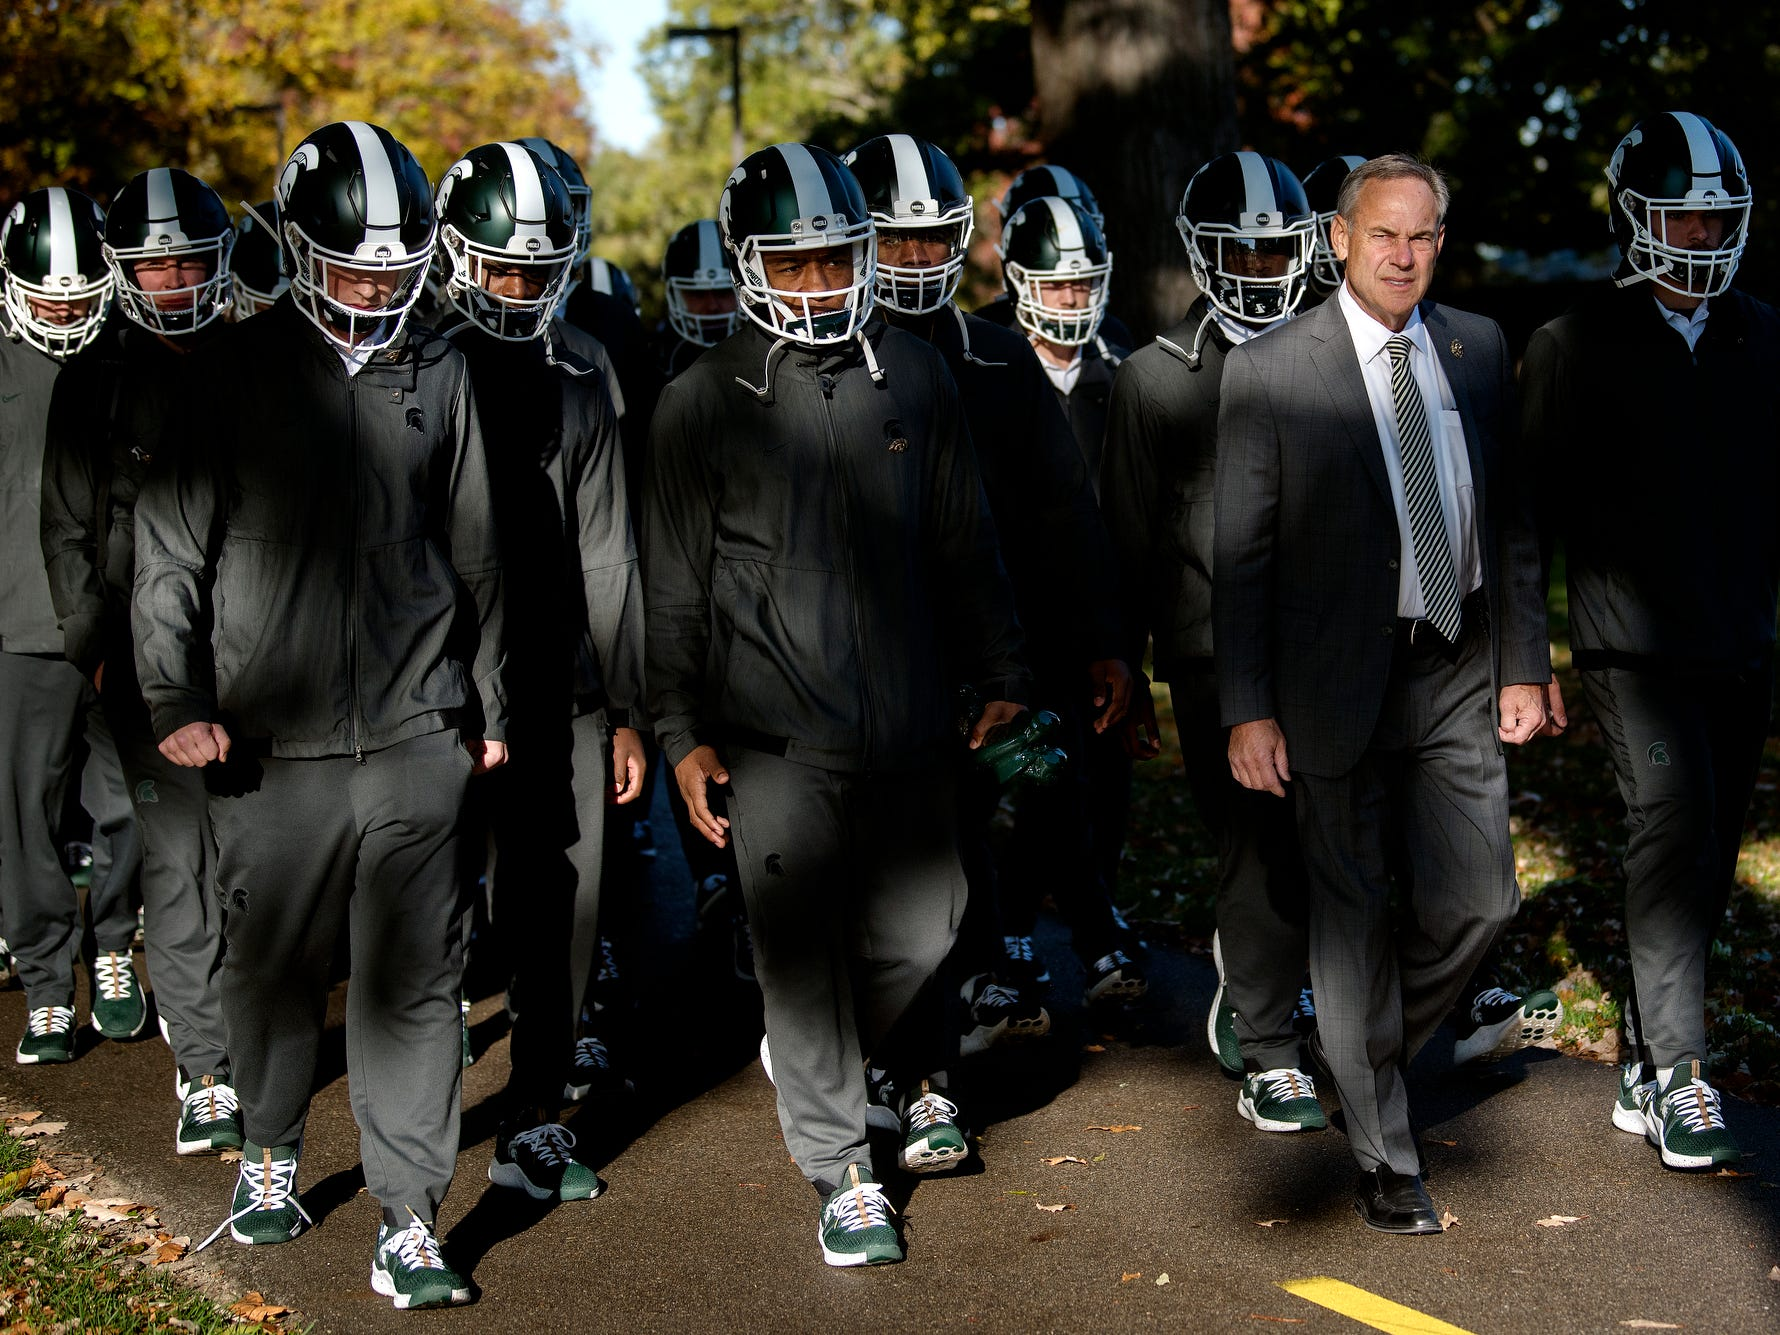 Michigan State head coach Mark Dantonio and the Spartans football team walk to Spartan Stadium before the game against Michigan on Saturday, Oct. 20, 2018, in East Lansing.